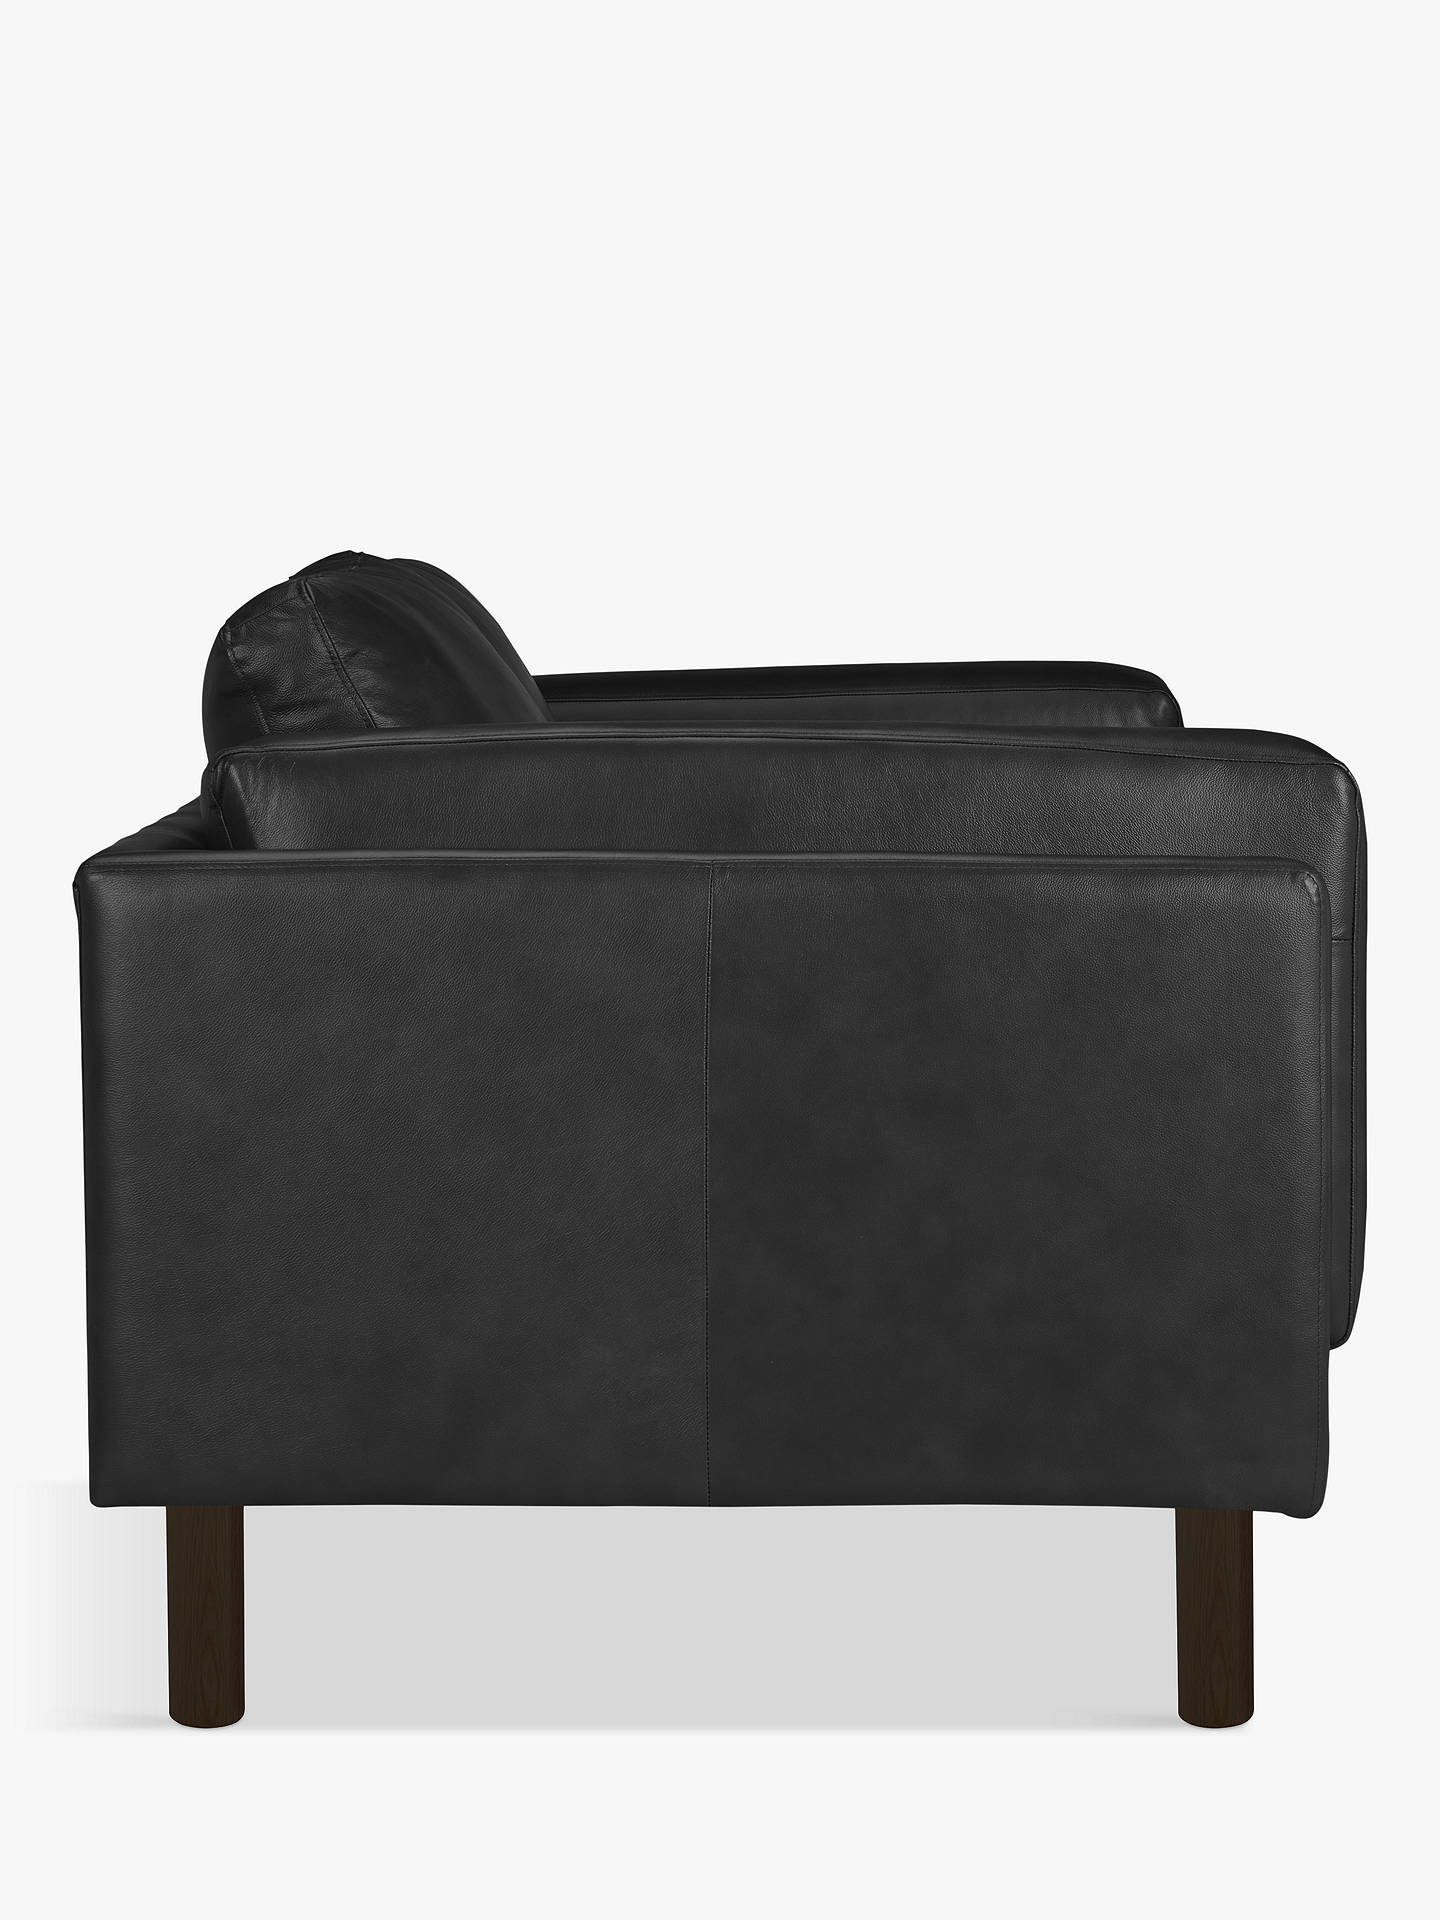 BuyDesign Project by John Lewis No.002 Grand 4 Seater Leather Sofa, Dark Leg, Contempo Black Online at johnlewis.com